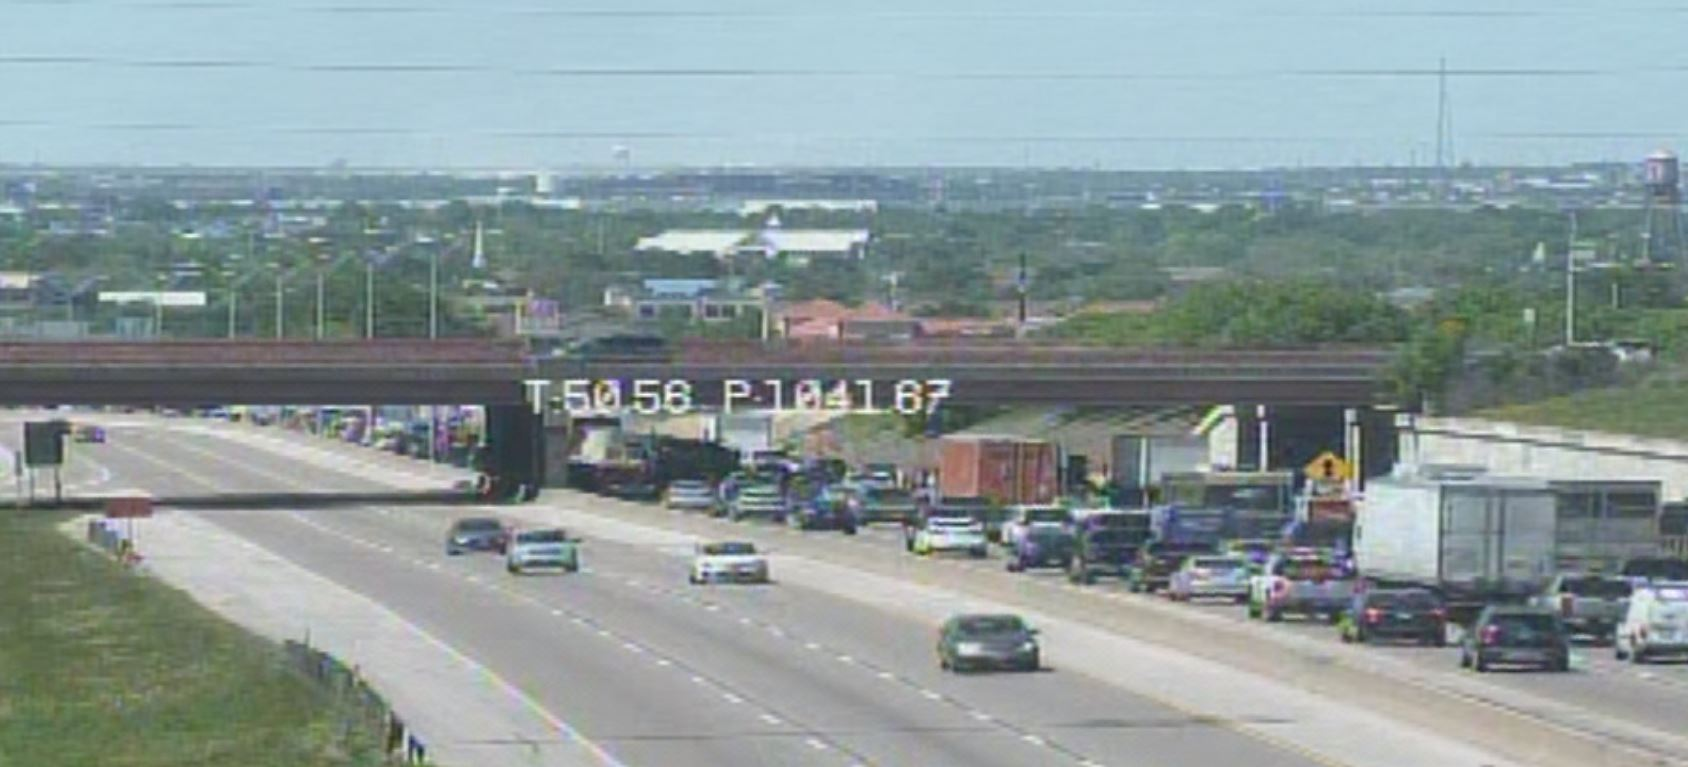 Backup on I-35 in Round Rock on April 23